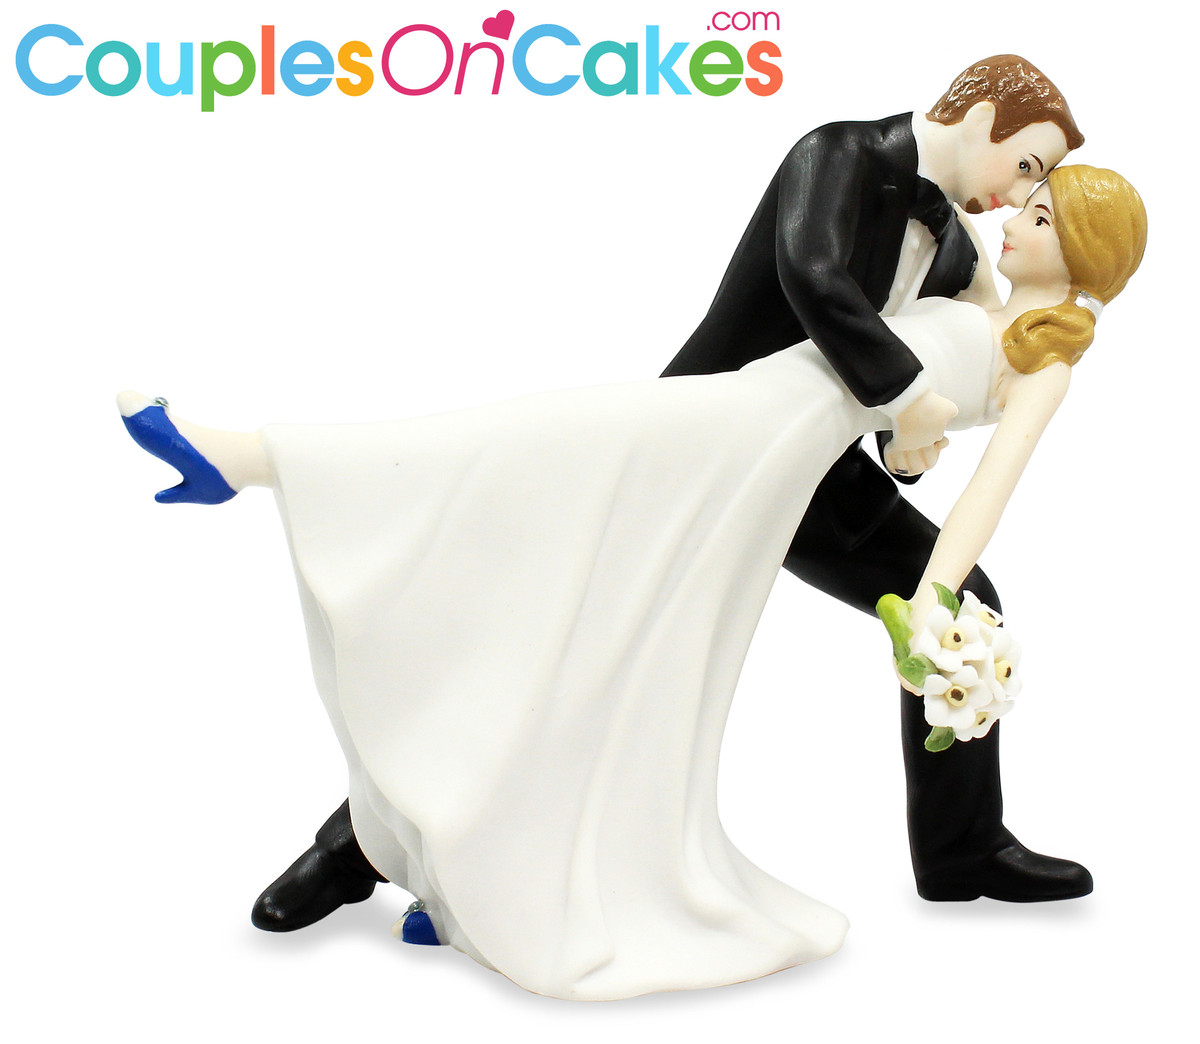 New york wedding favors gifts reviews for 410 favors long island ny couplesoncakes negle Choice Image